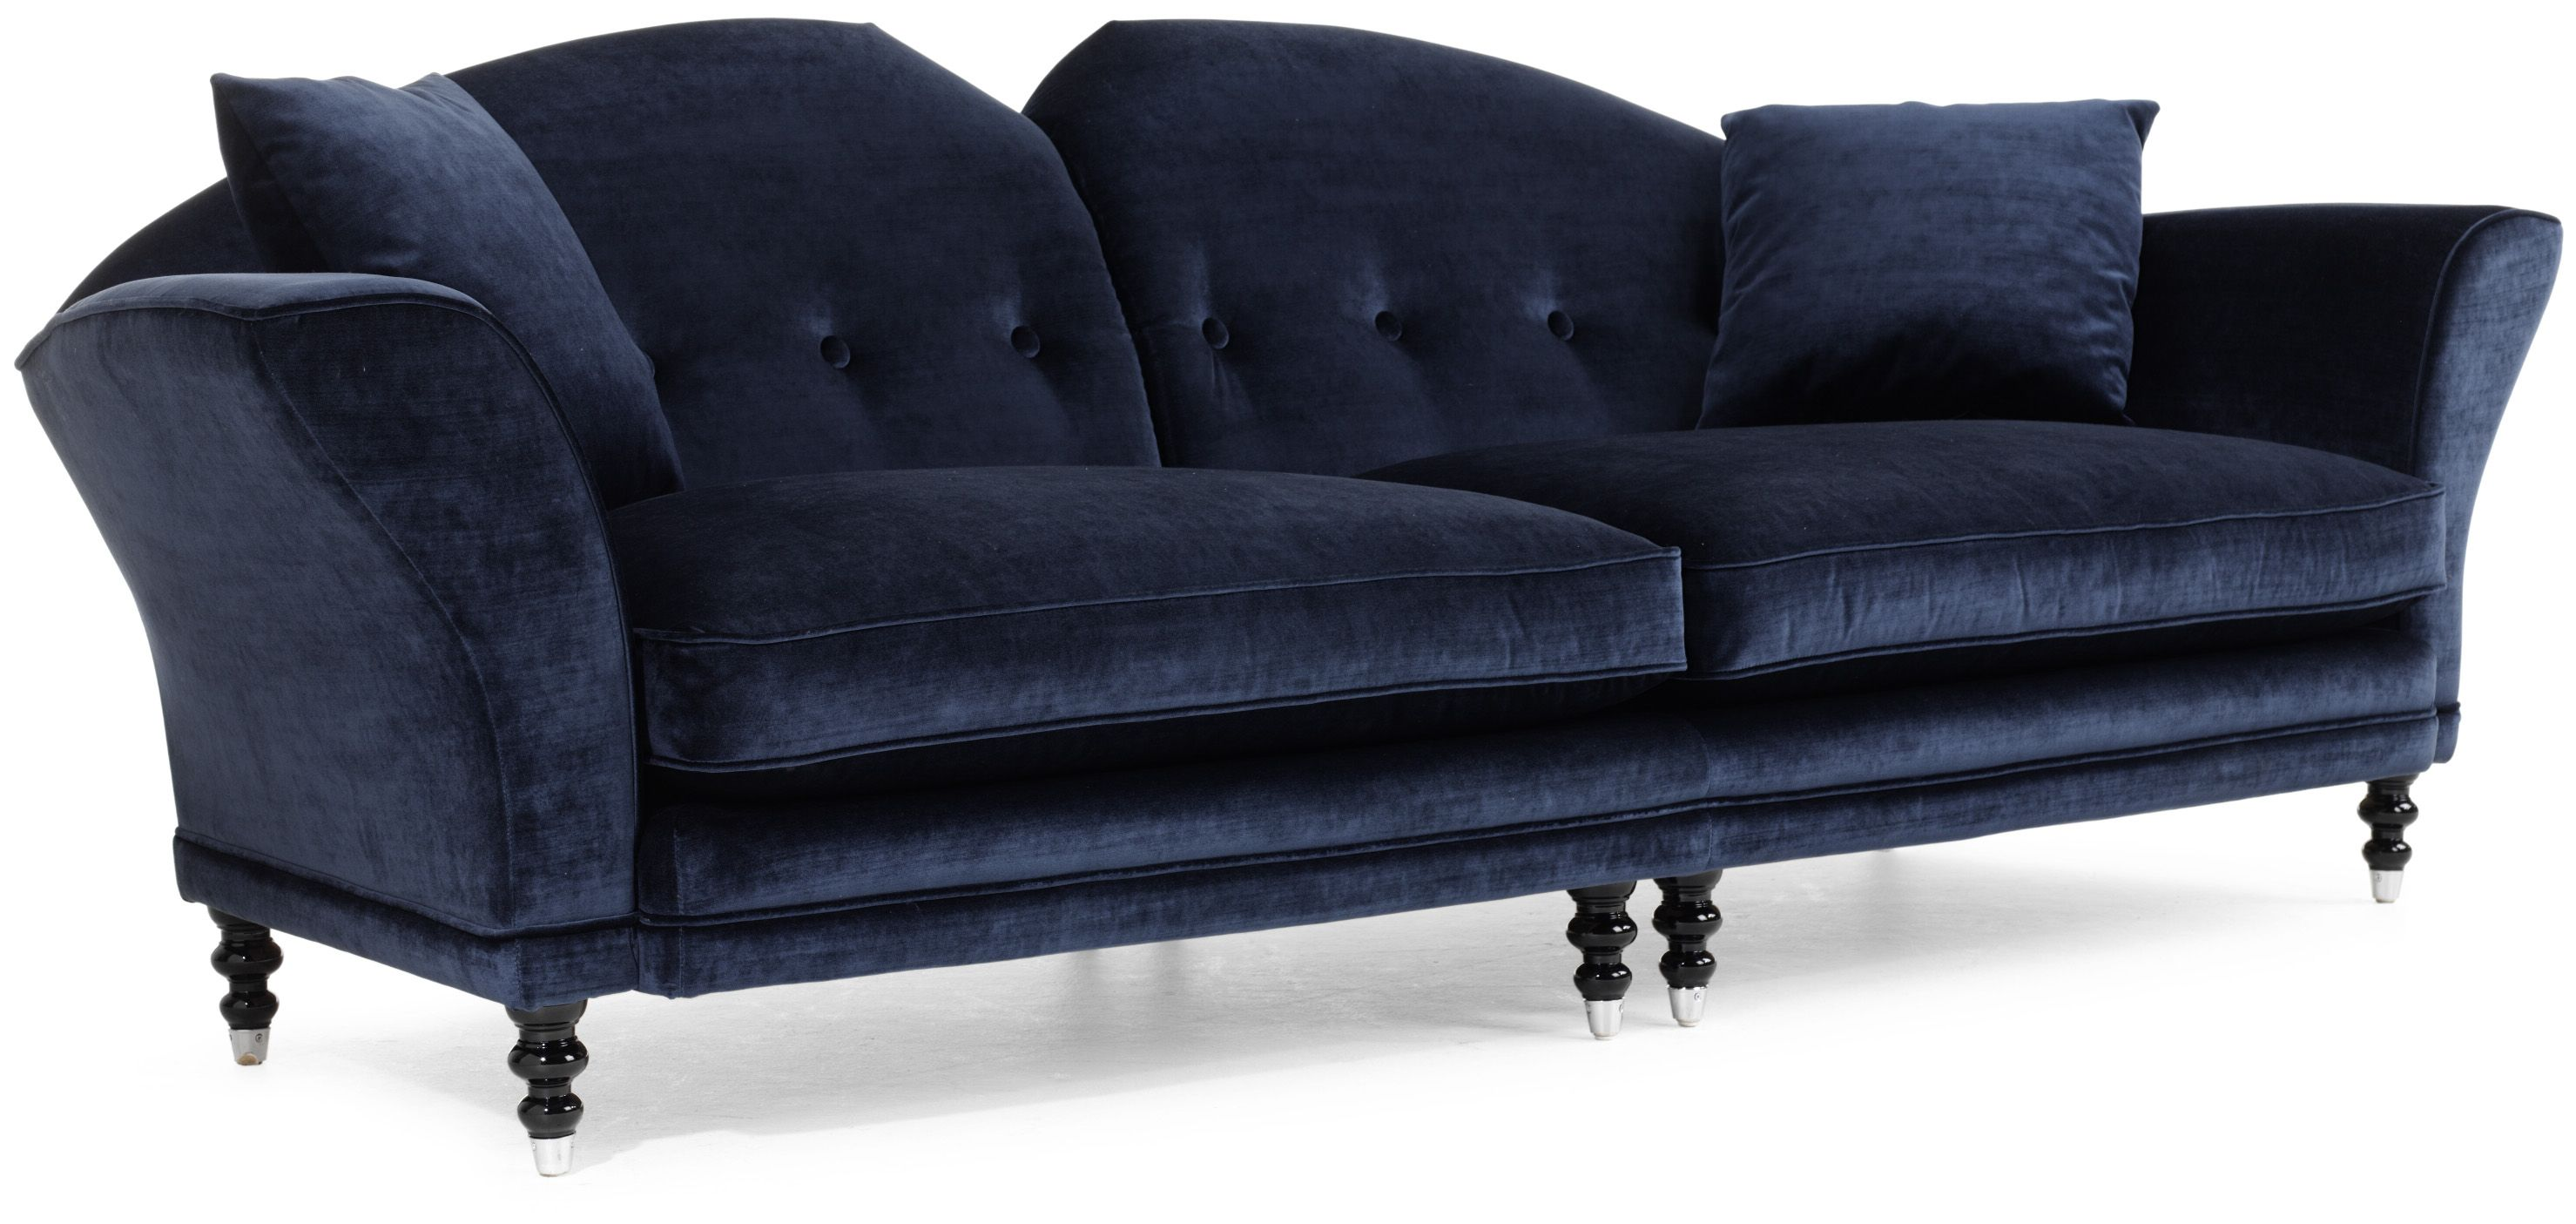 Furniture With A Royal Touch From Sweden Splendid Willow I Find The Sydney  Sofa Very Attractive